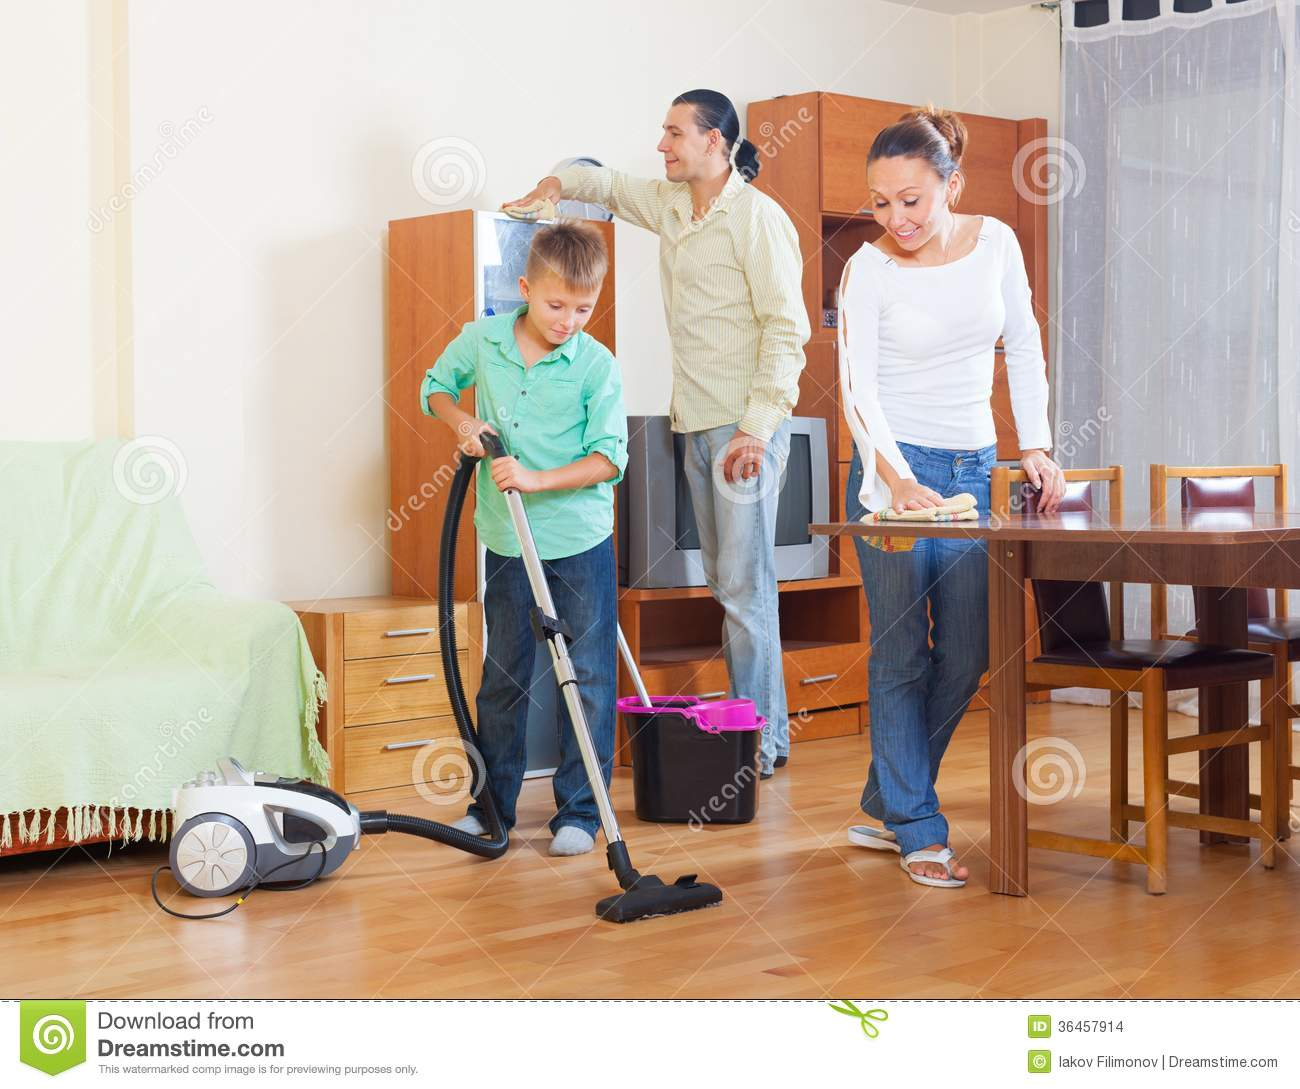 Asistencia Del Hogar Ordinary Family Doing Housework Together Stock Photo